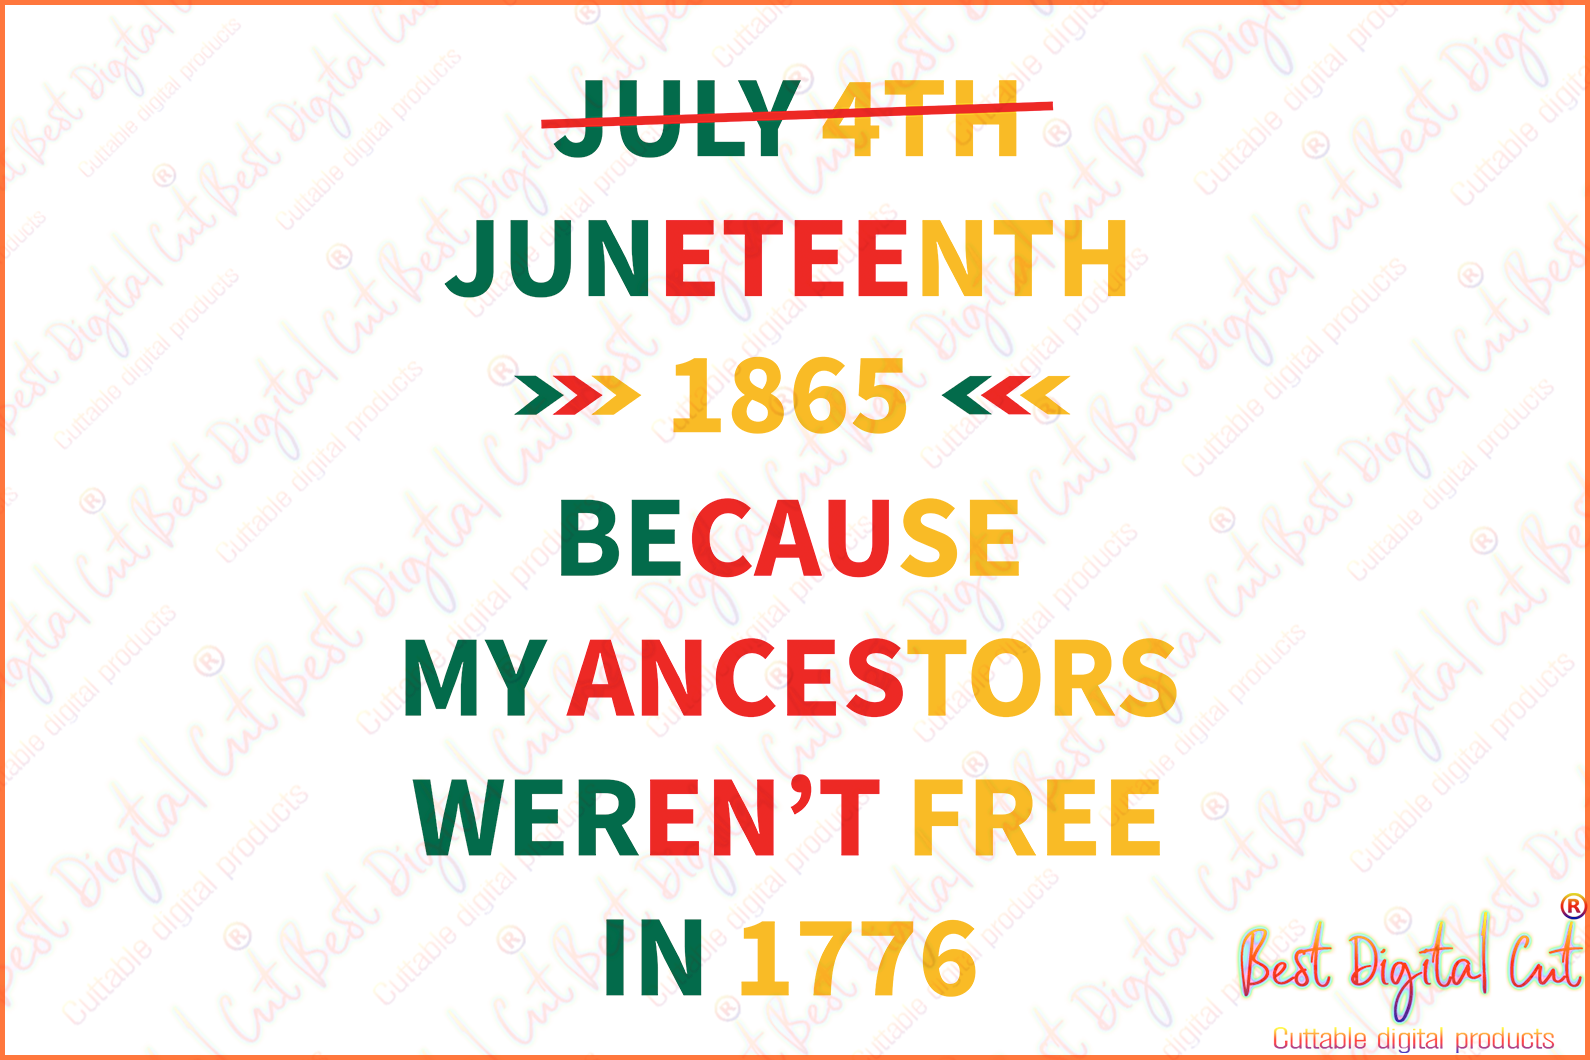 Juneteenth 1865 because my ancestors svg,freedom day svg,jubilee day svg,American holiday,June 19th svg,1776 July 4th,emancipation day svg,independence day svg,black African hands,American pride gift,black lives matter shirt,black history month